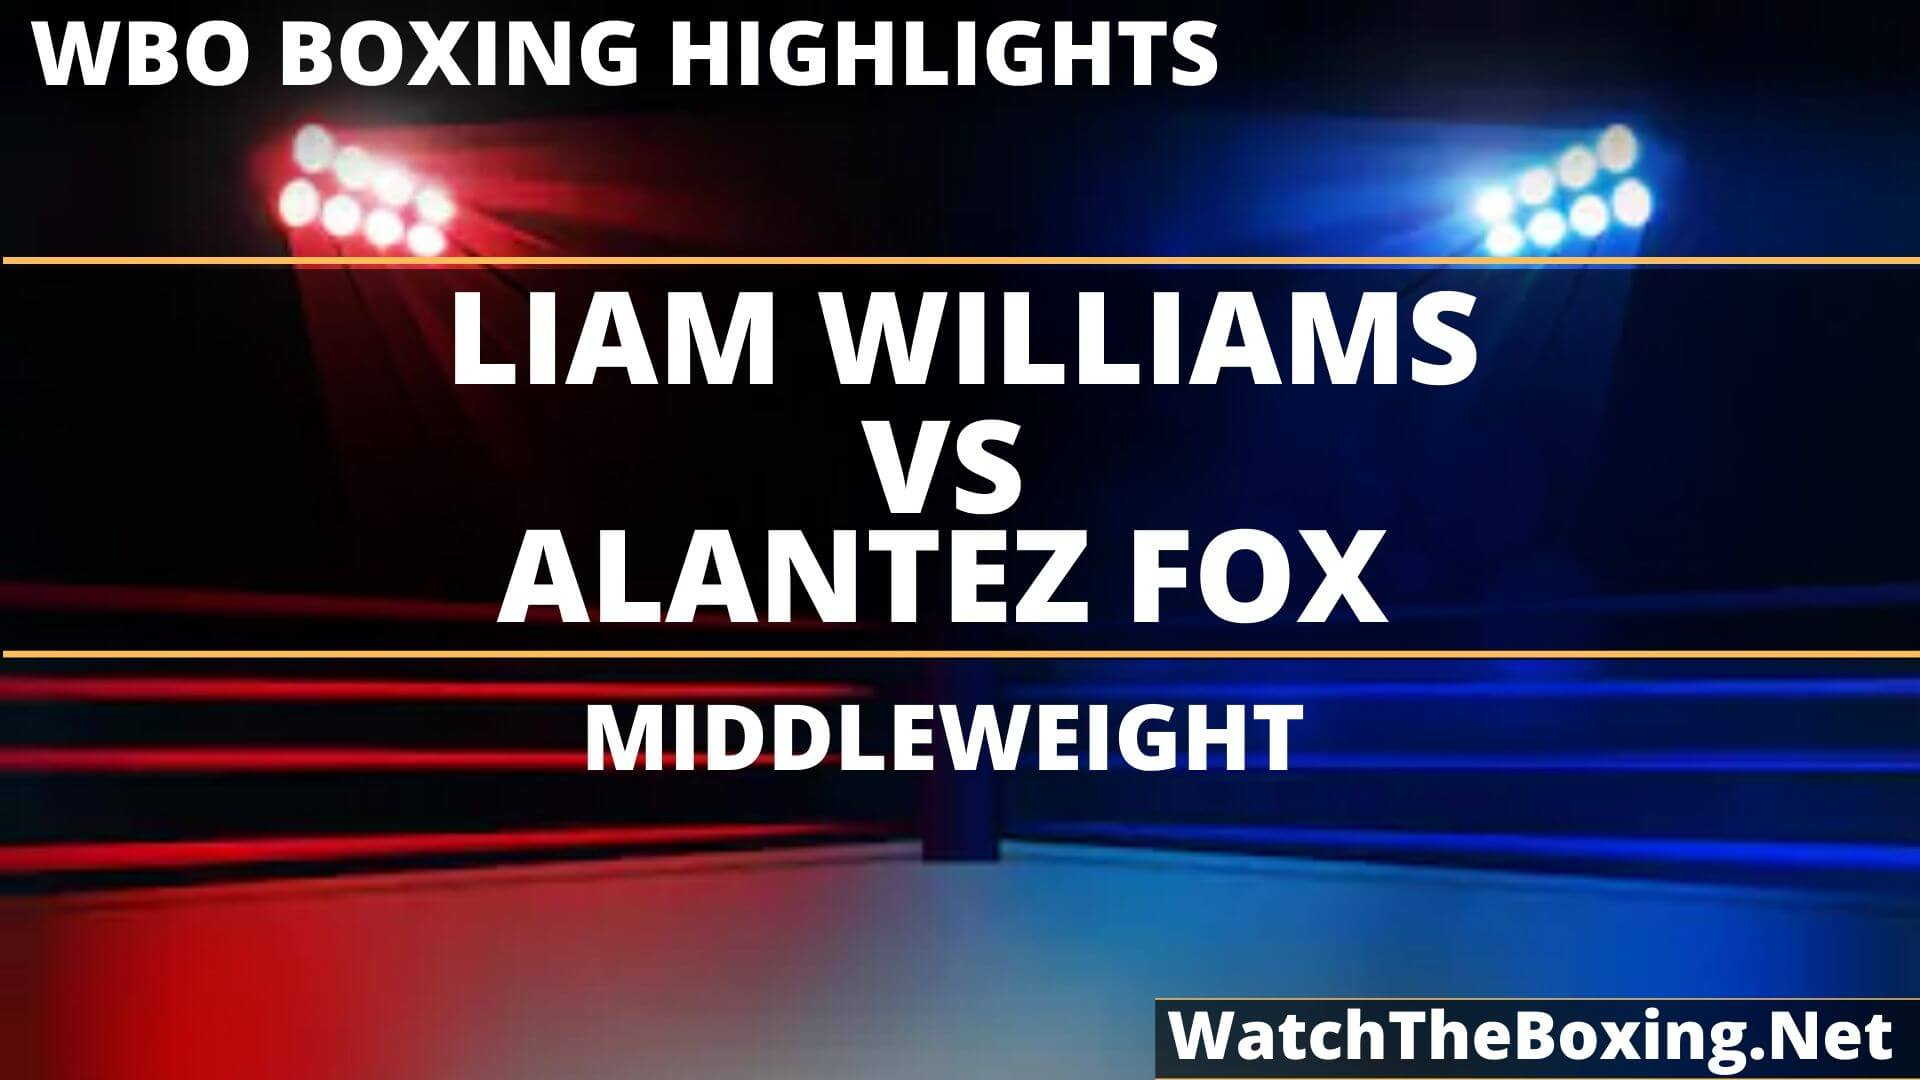 Liam Williams Vs Alantez Fox Highlights 2019